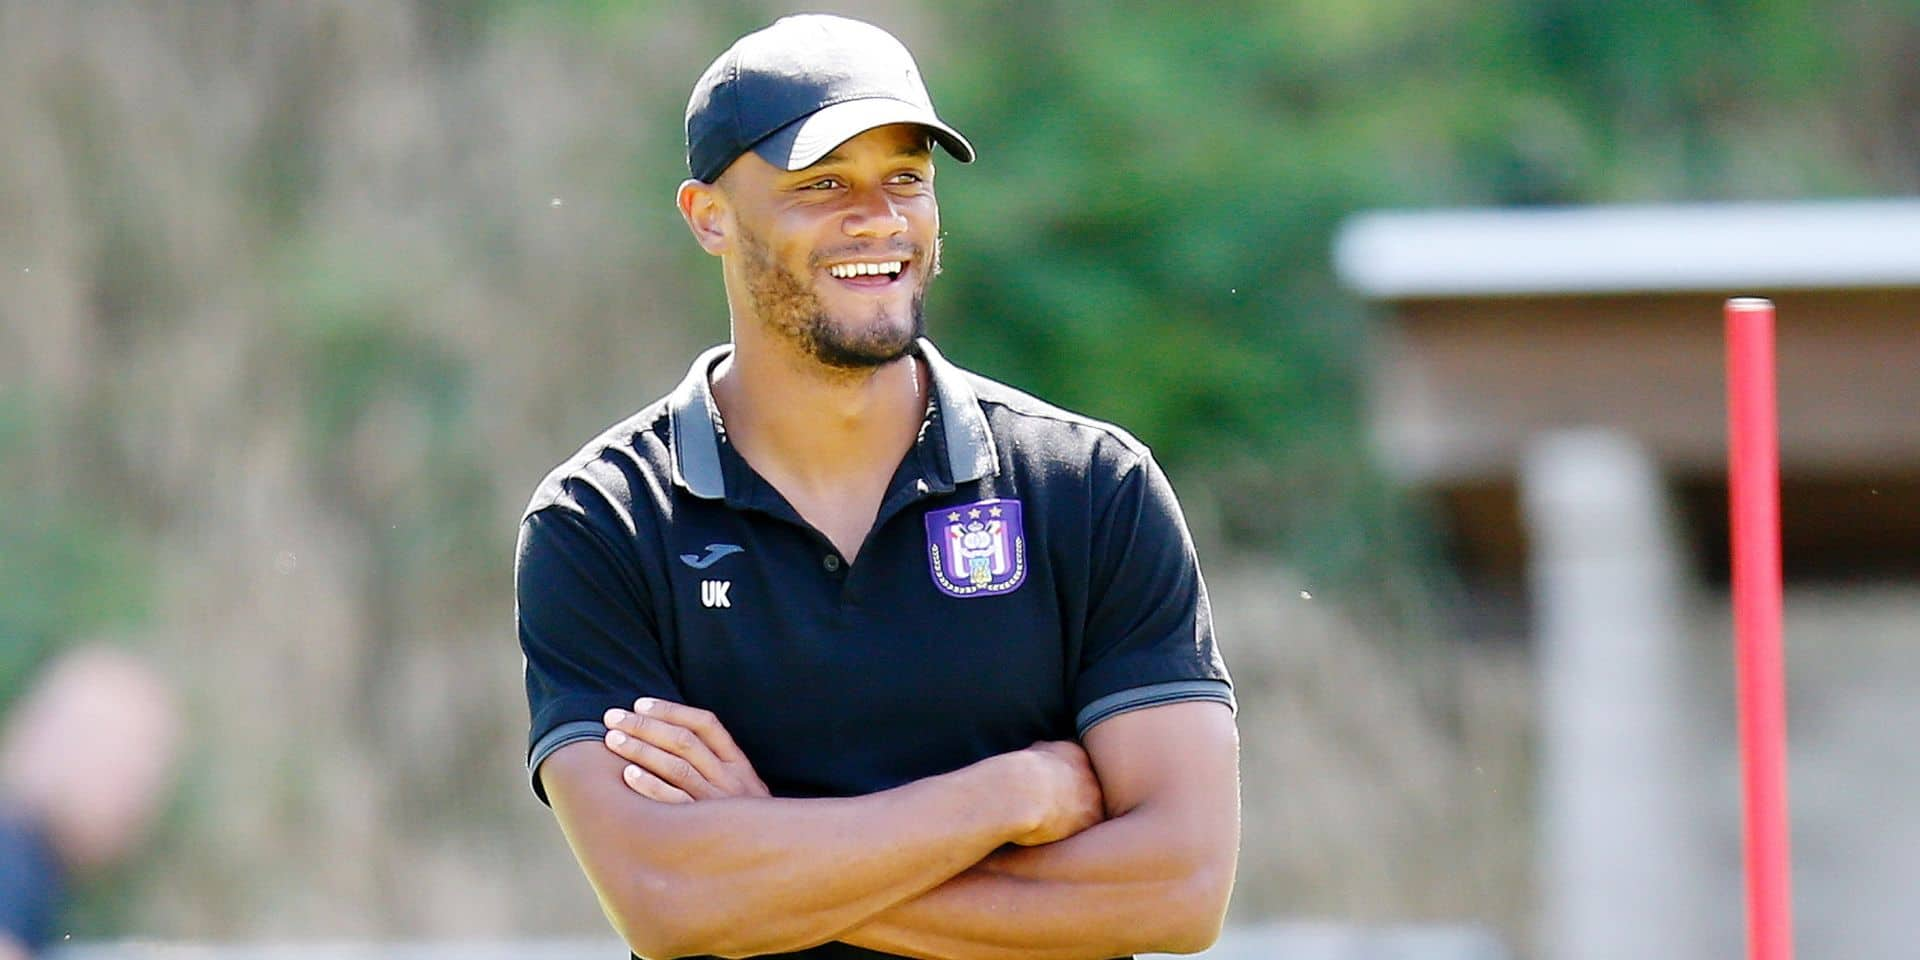 Anderlecht's new player/ manager Vincent Kompany pictured during a training session of Belgian soccer team RSC Anderlecht at their summer camp, Thursday 04 July 2019 in Venlo, The Netherlands, in preparation of the upcoming 2019-2020 Jupiler Pro League season. BELGA PHOTO BRUNO FAHY